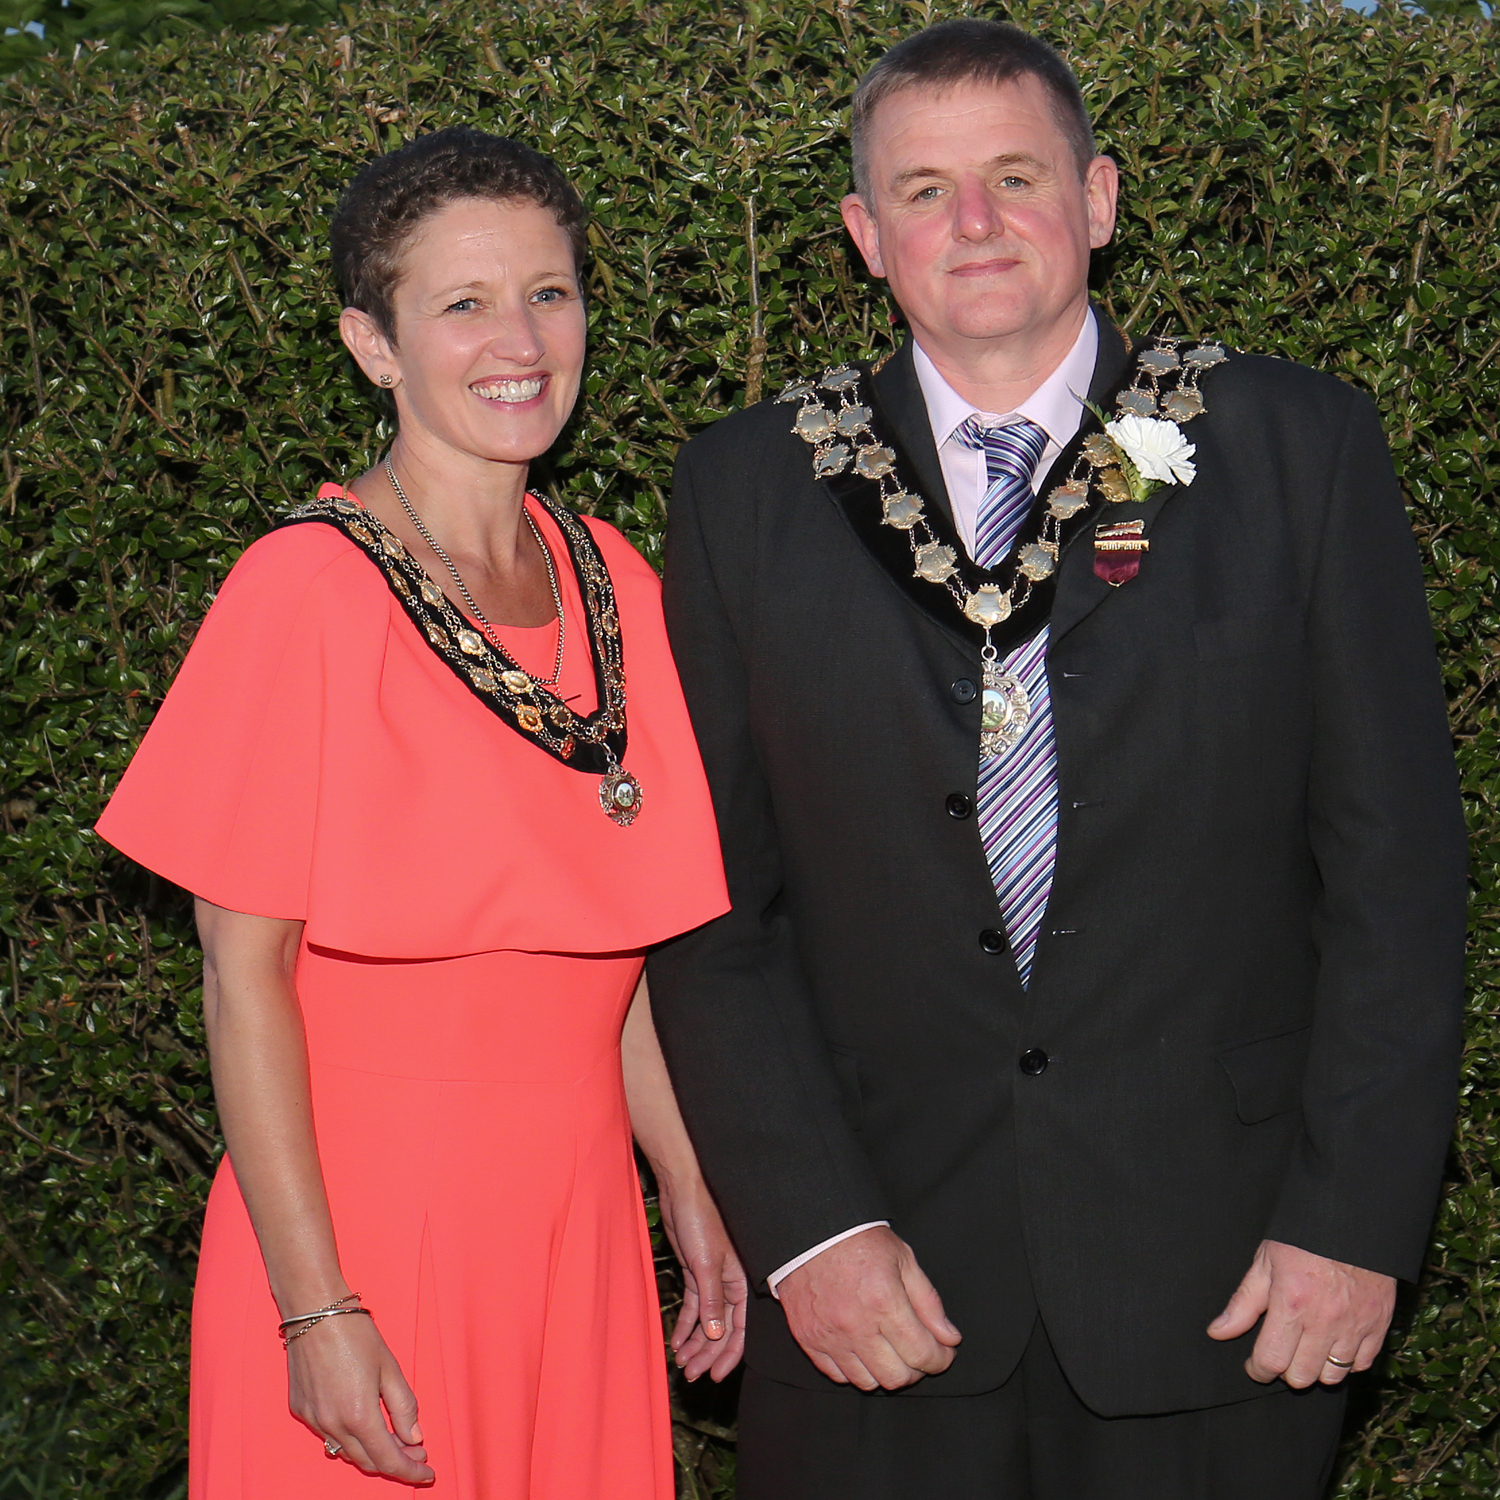 The new Newcastle Emlyn Mayor and Mayoress Cefin and Anwen Evans. PICTURE: Barry Adams